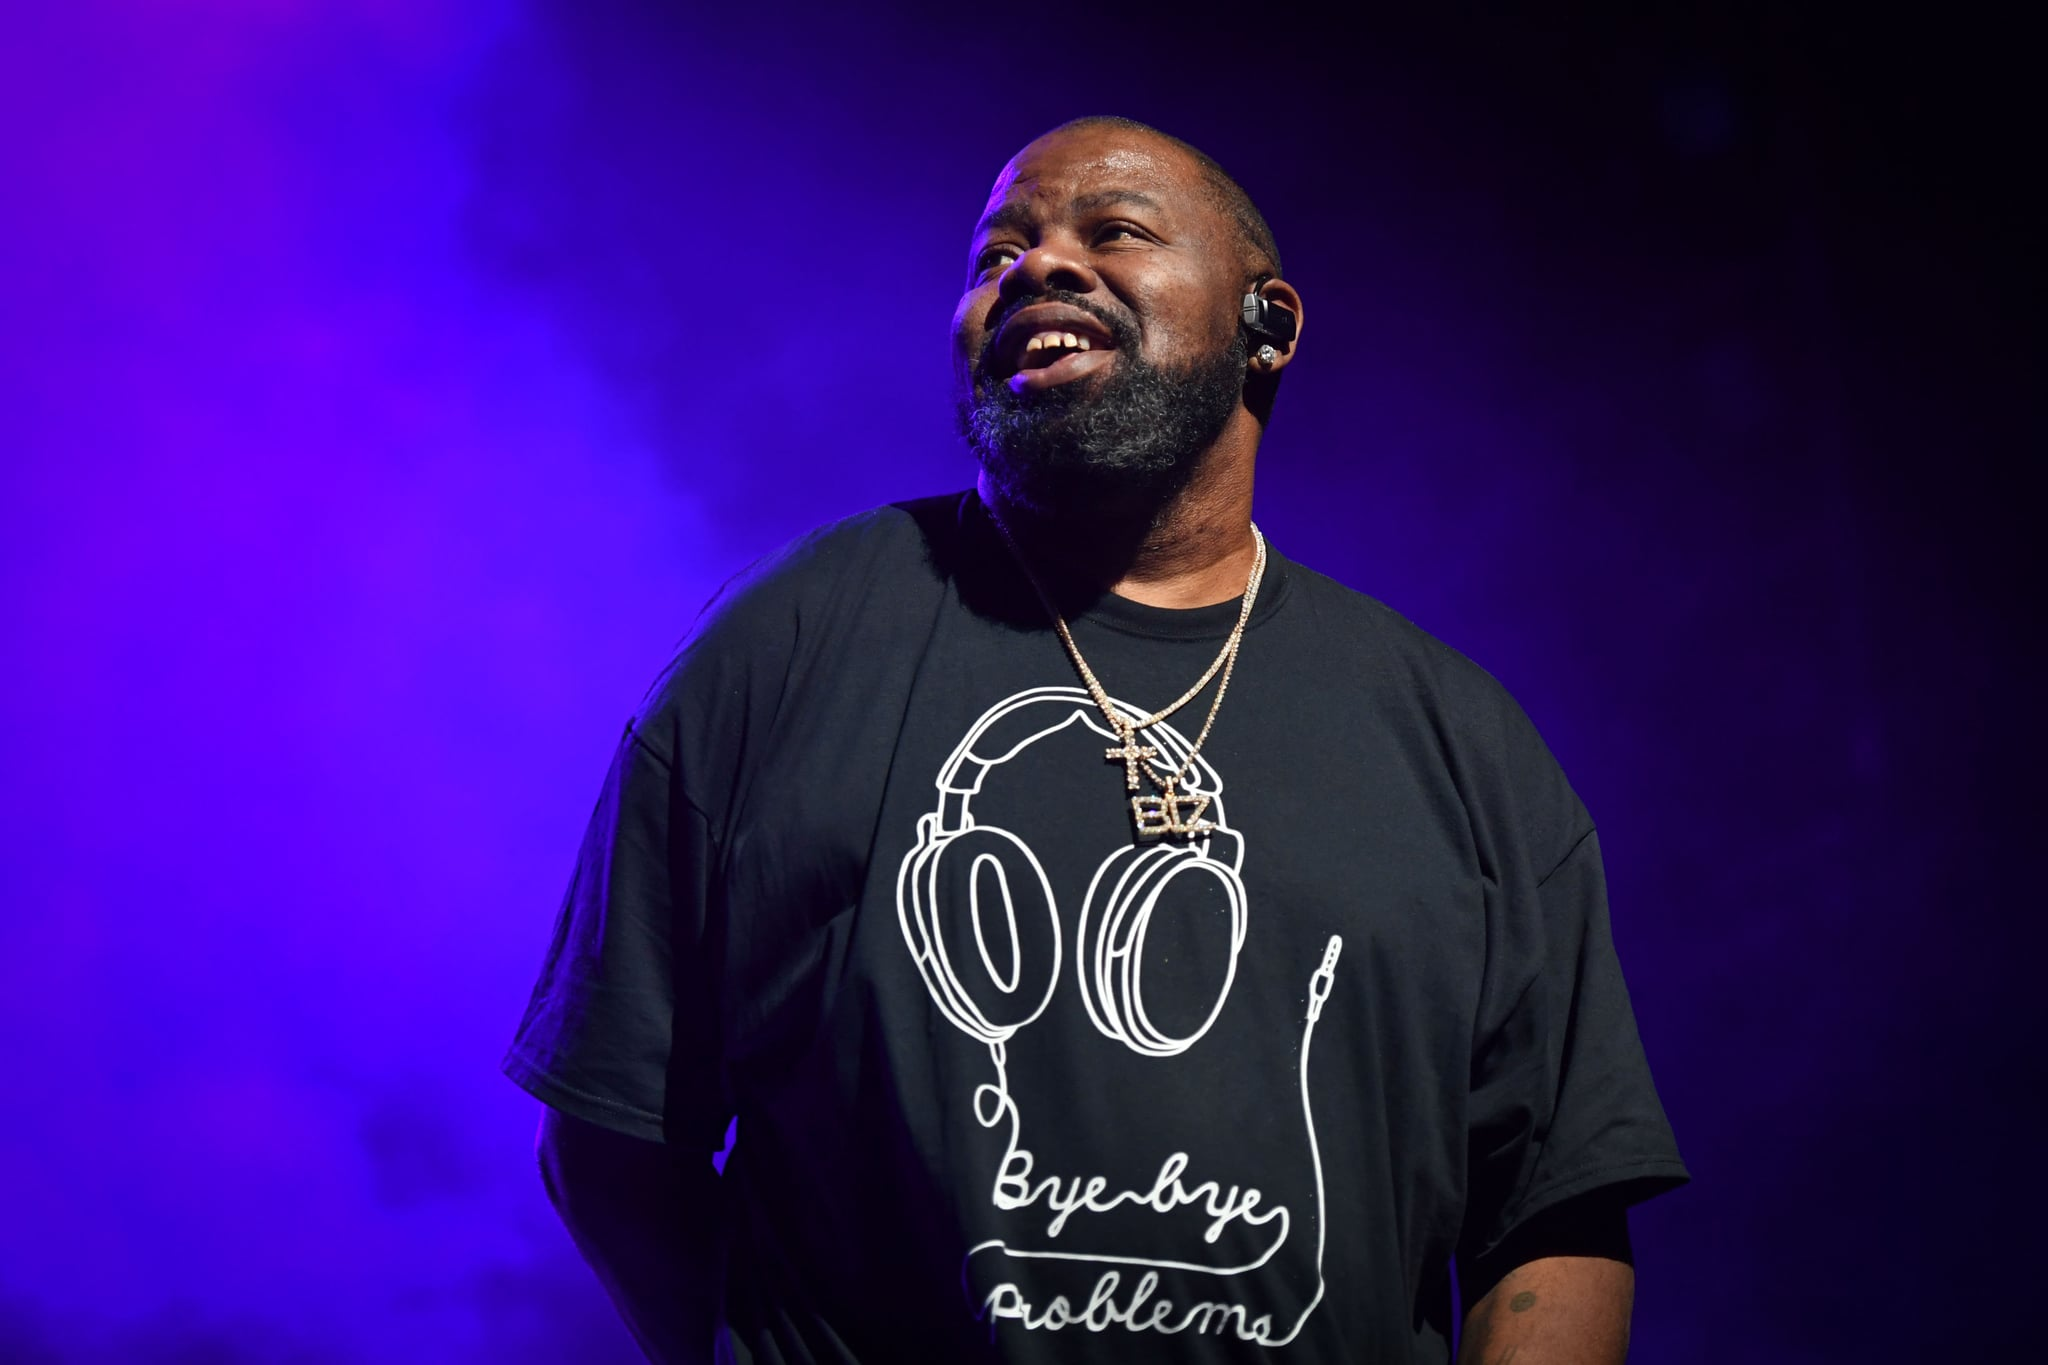 NEW YORK, NY - OCTOBER 27:  Biz Markie co-host Breakin Convention at The Apollo Theatre on October 27, 2017 in New York City.  (Photo by Shahar Azran/WireImage)